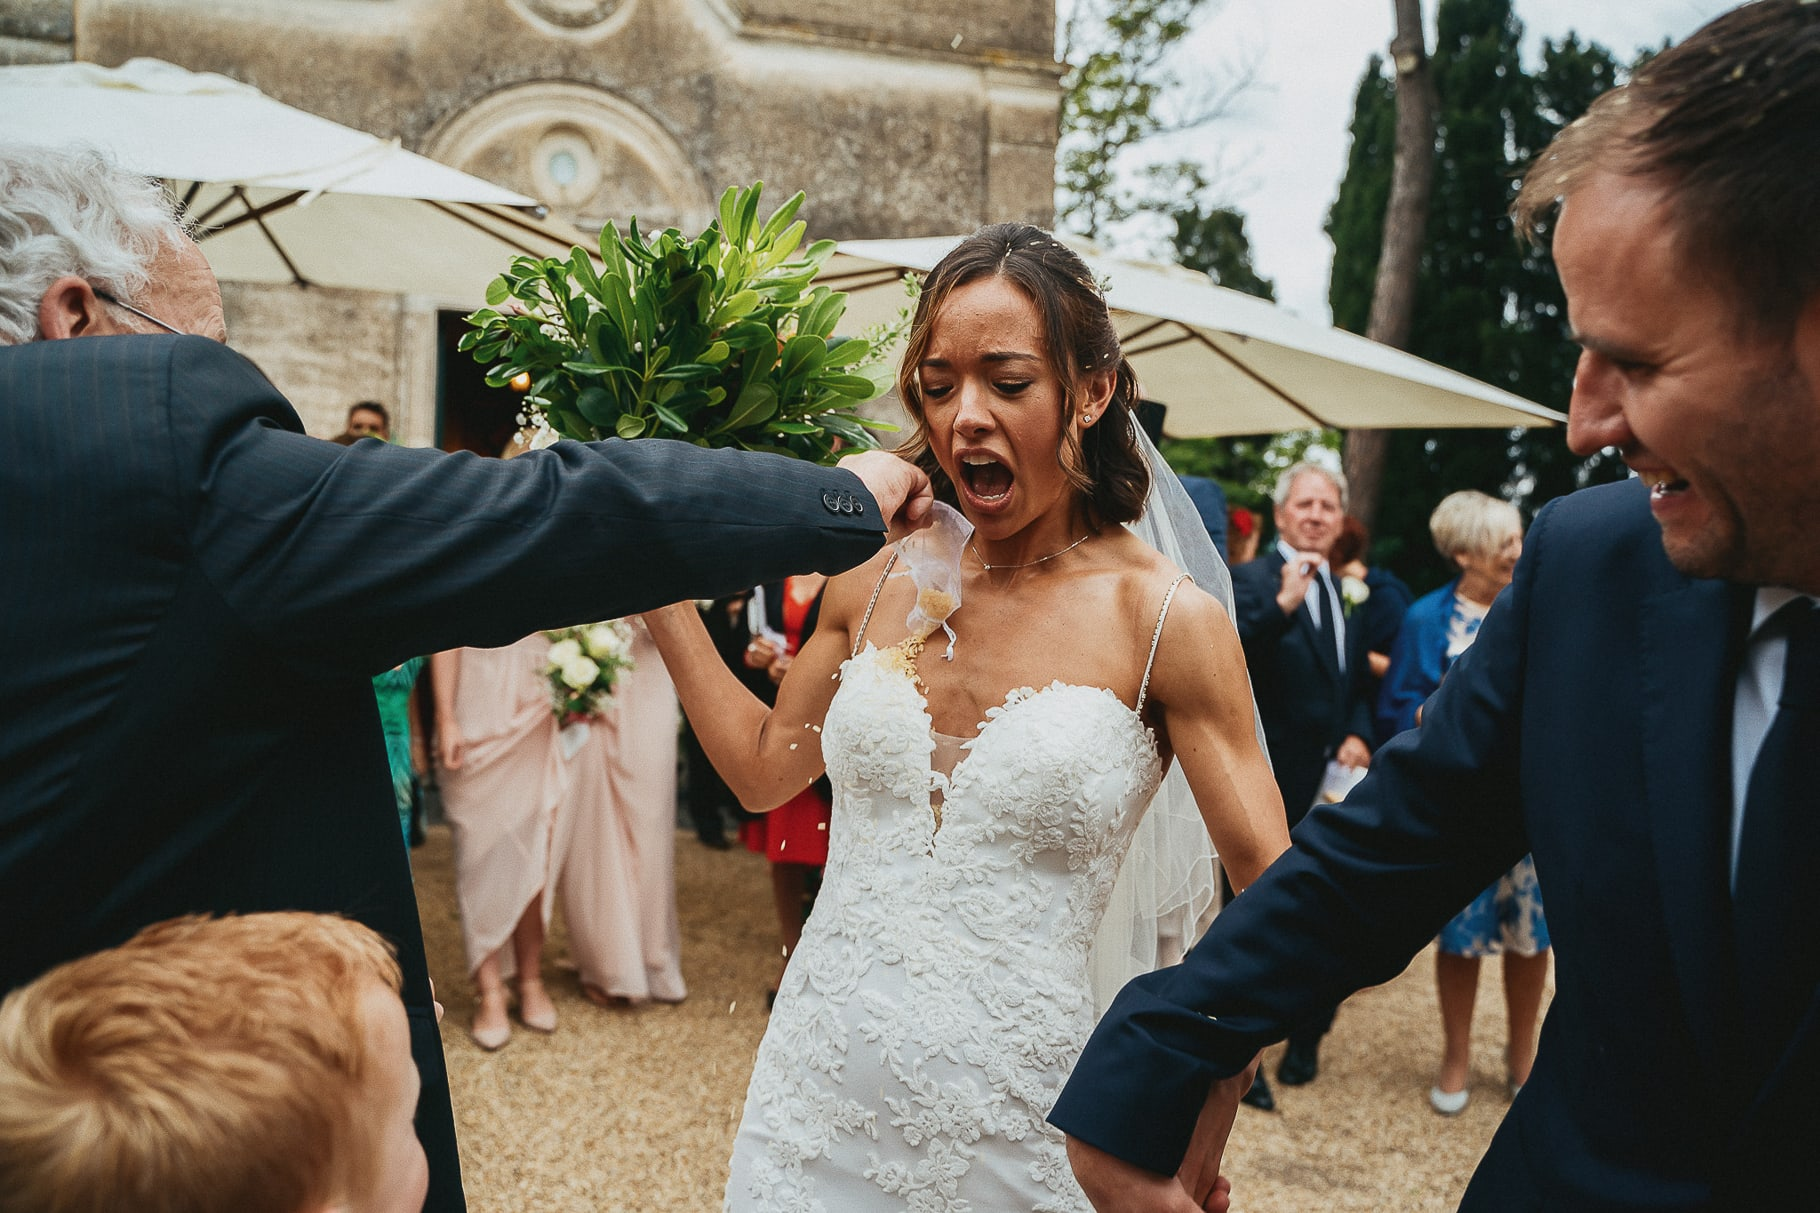 the bride and groom leave the church hand by hand and the guests throw rice in a photo captured by the wedding photographer italy